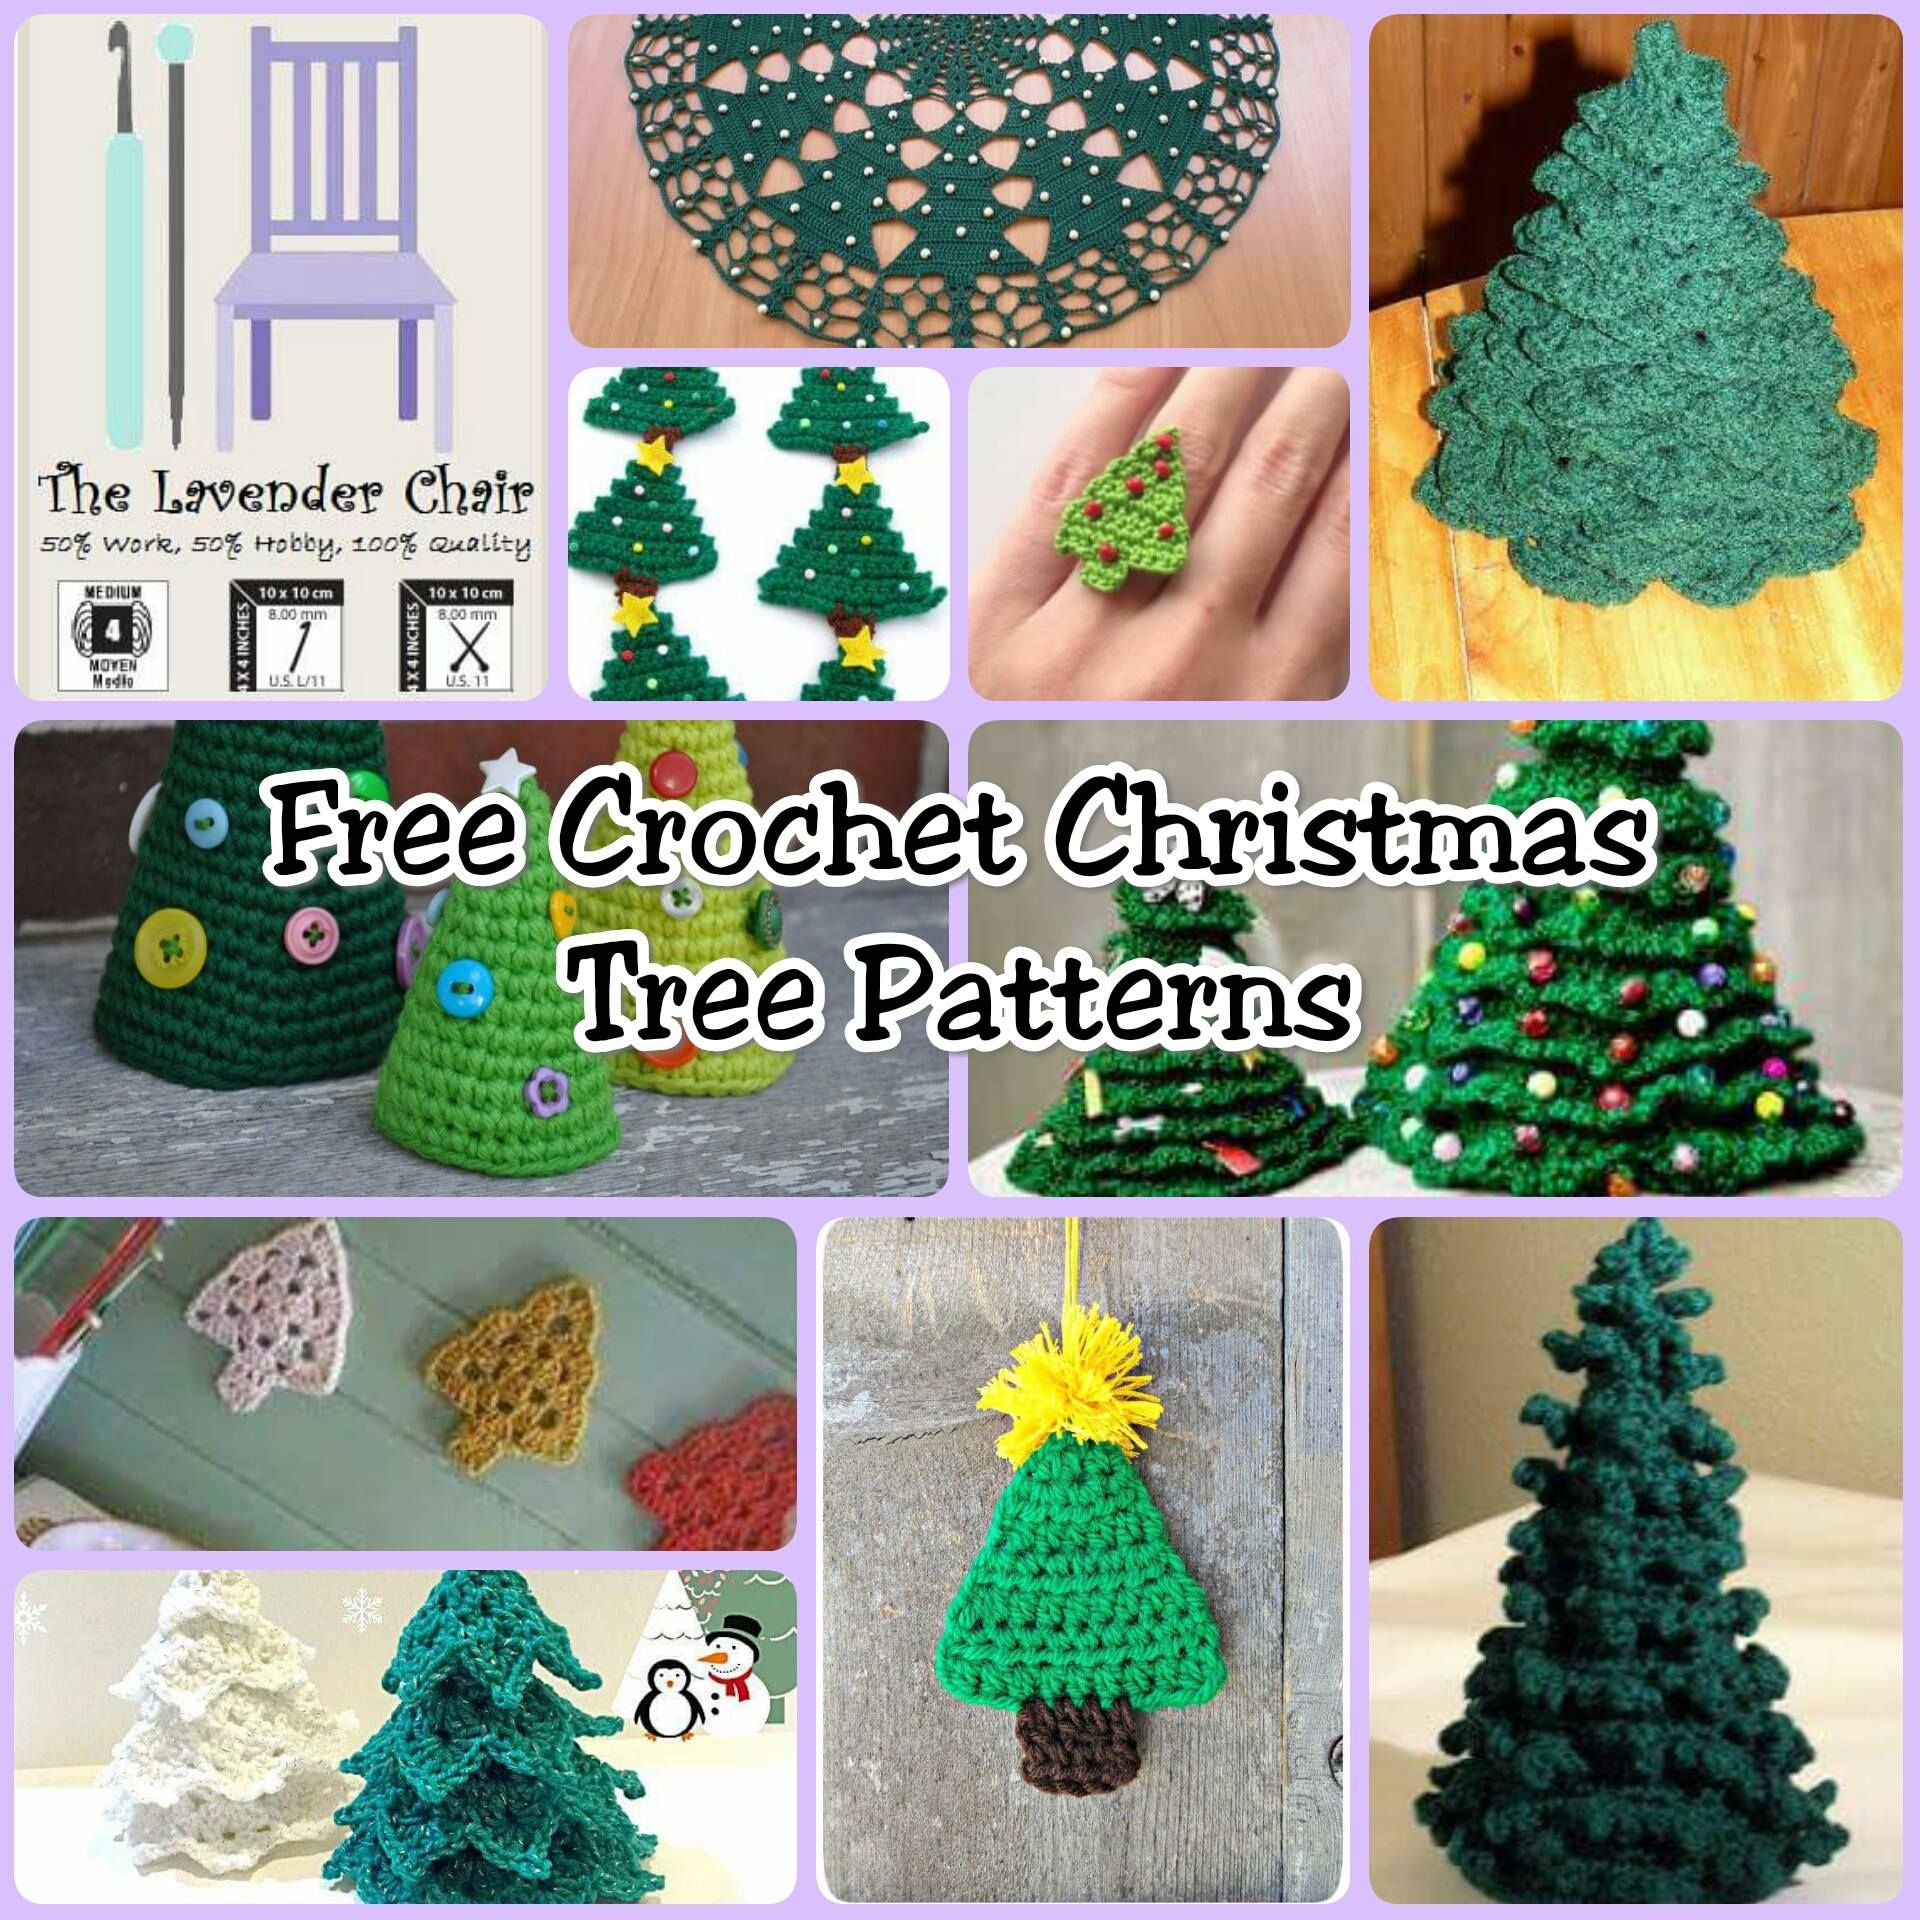 Free Crochet Christmas Tree Patterns - The Lavender Chair | My hobby ...